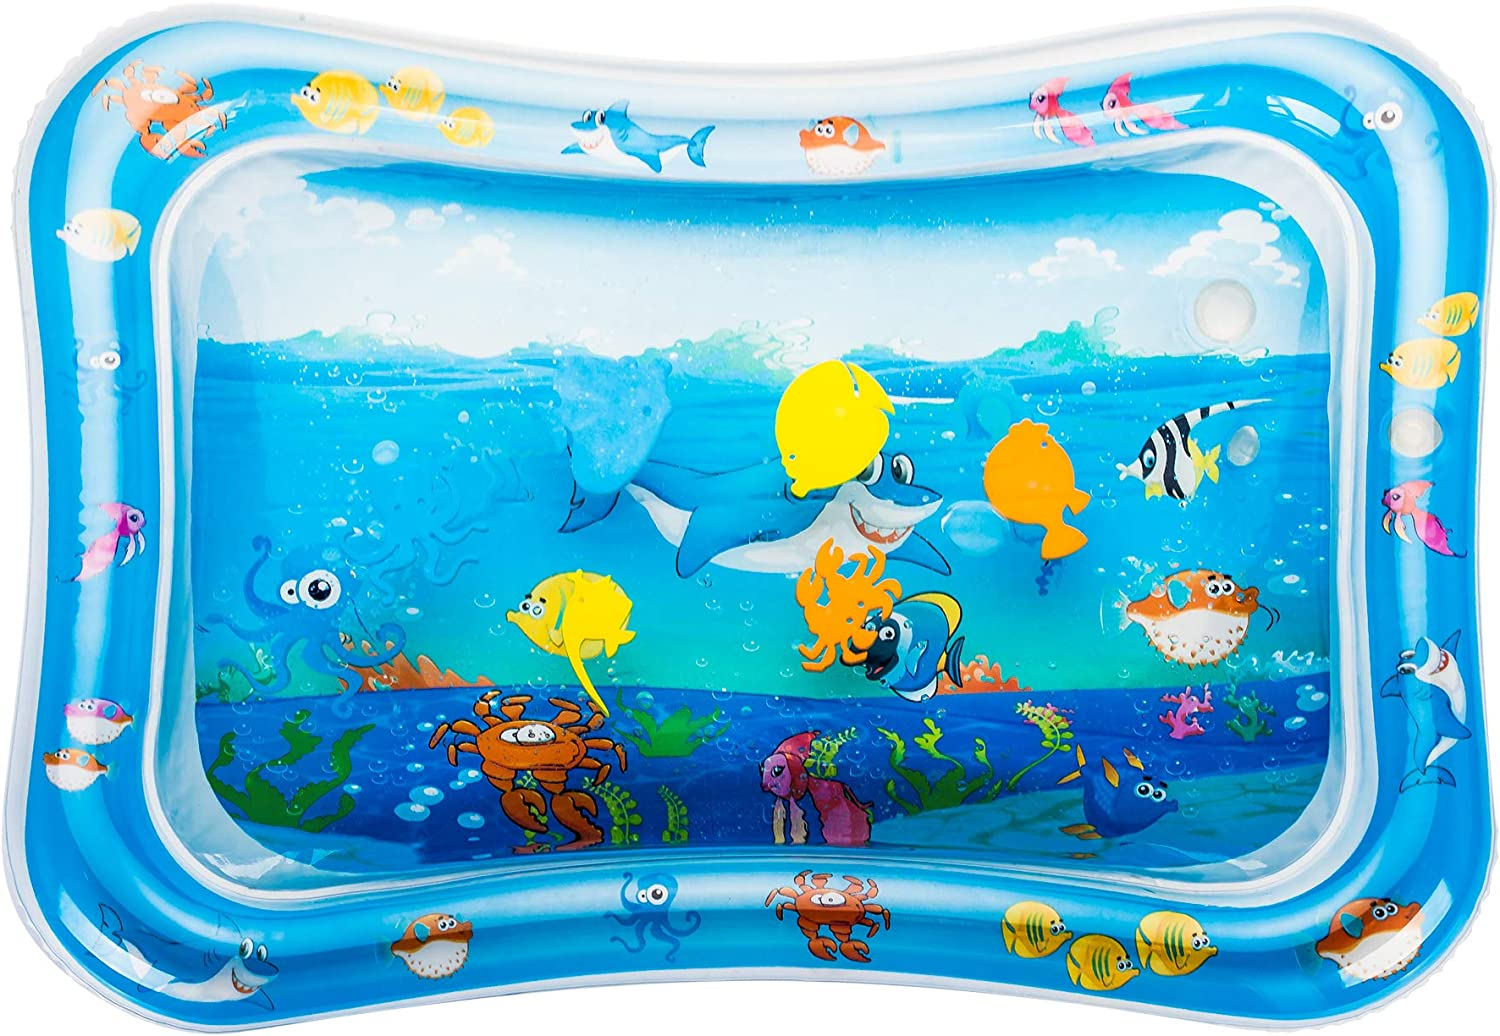 Pekirun Tummy Time Water Play Mat,Early Activity Development Inflatable Mat for Babies,Fun Cute Floating Water Toys for 3-9 Months Baby Promotes Visual Stimulation Growth